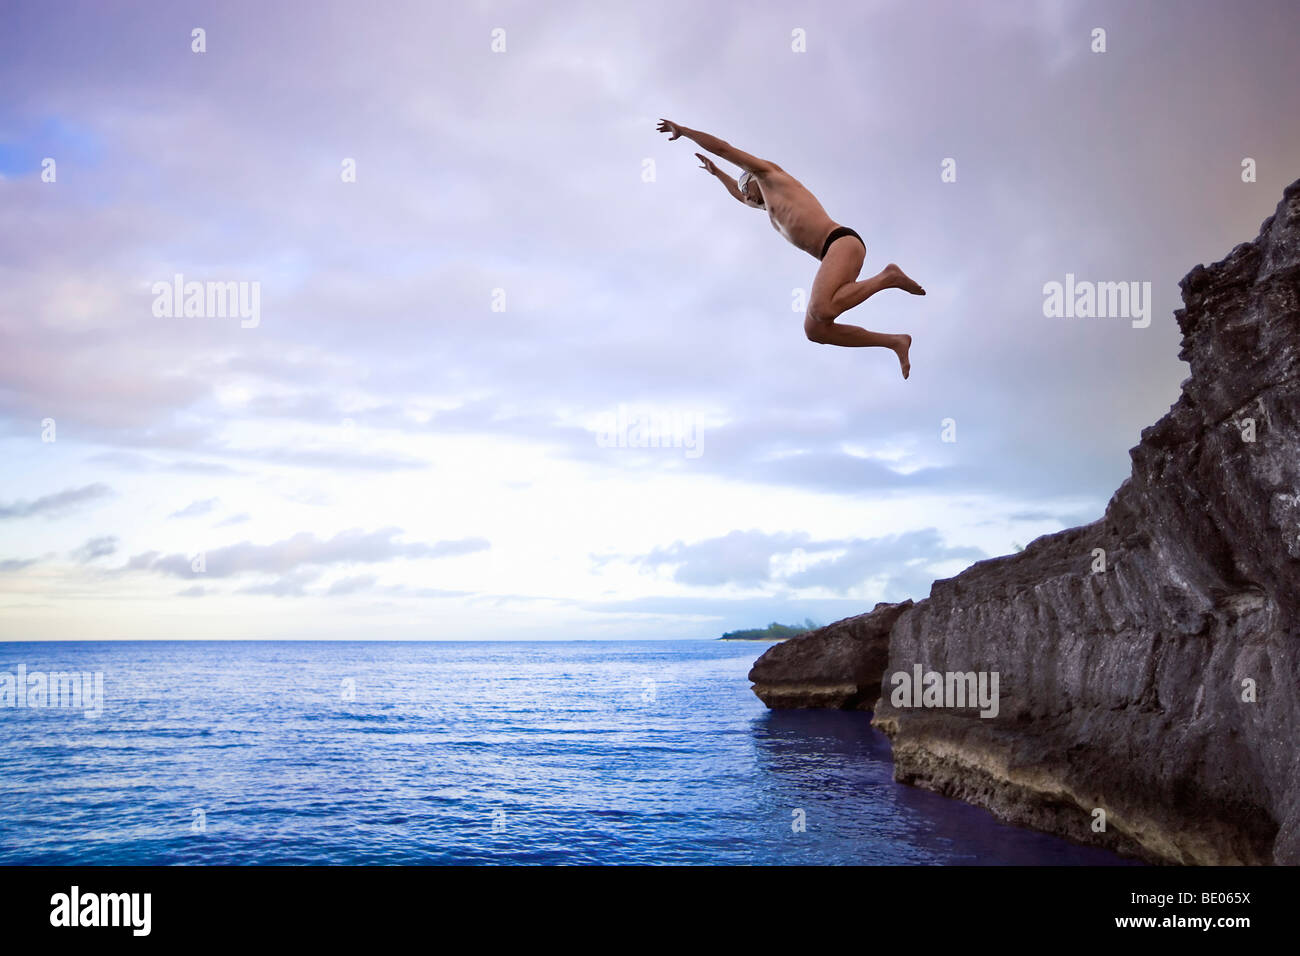 Cliff Jumping Into Sea Stockfotos & Cliff Jumping Into Sea ...